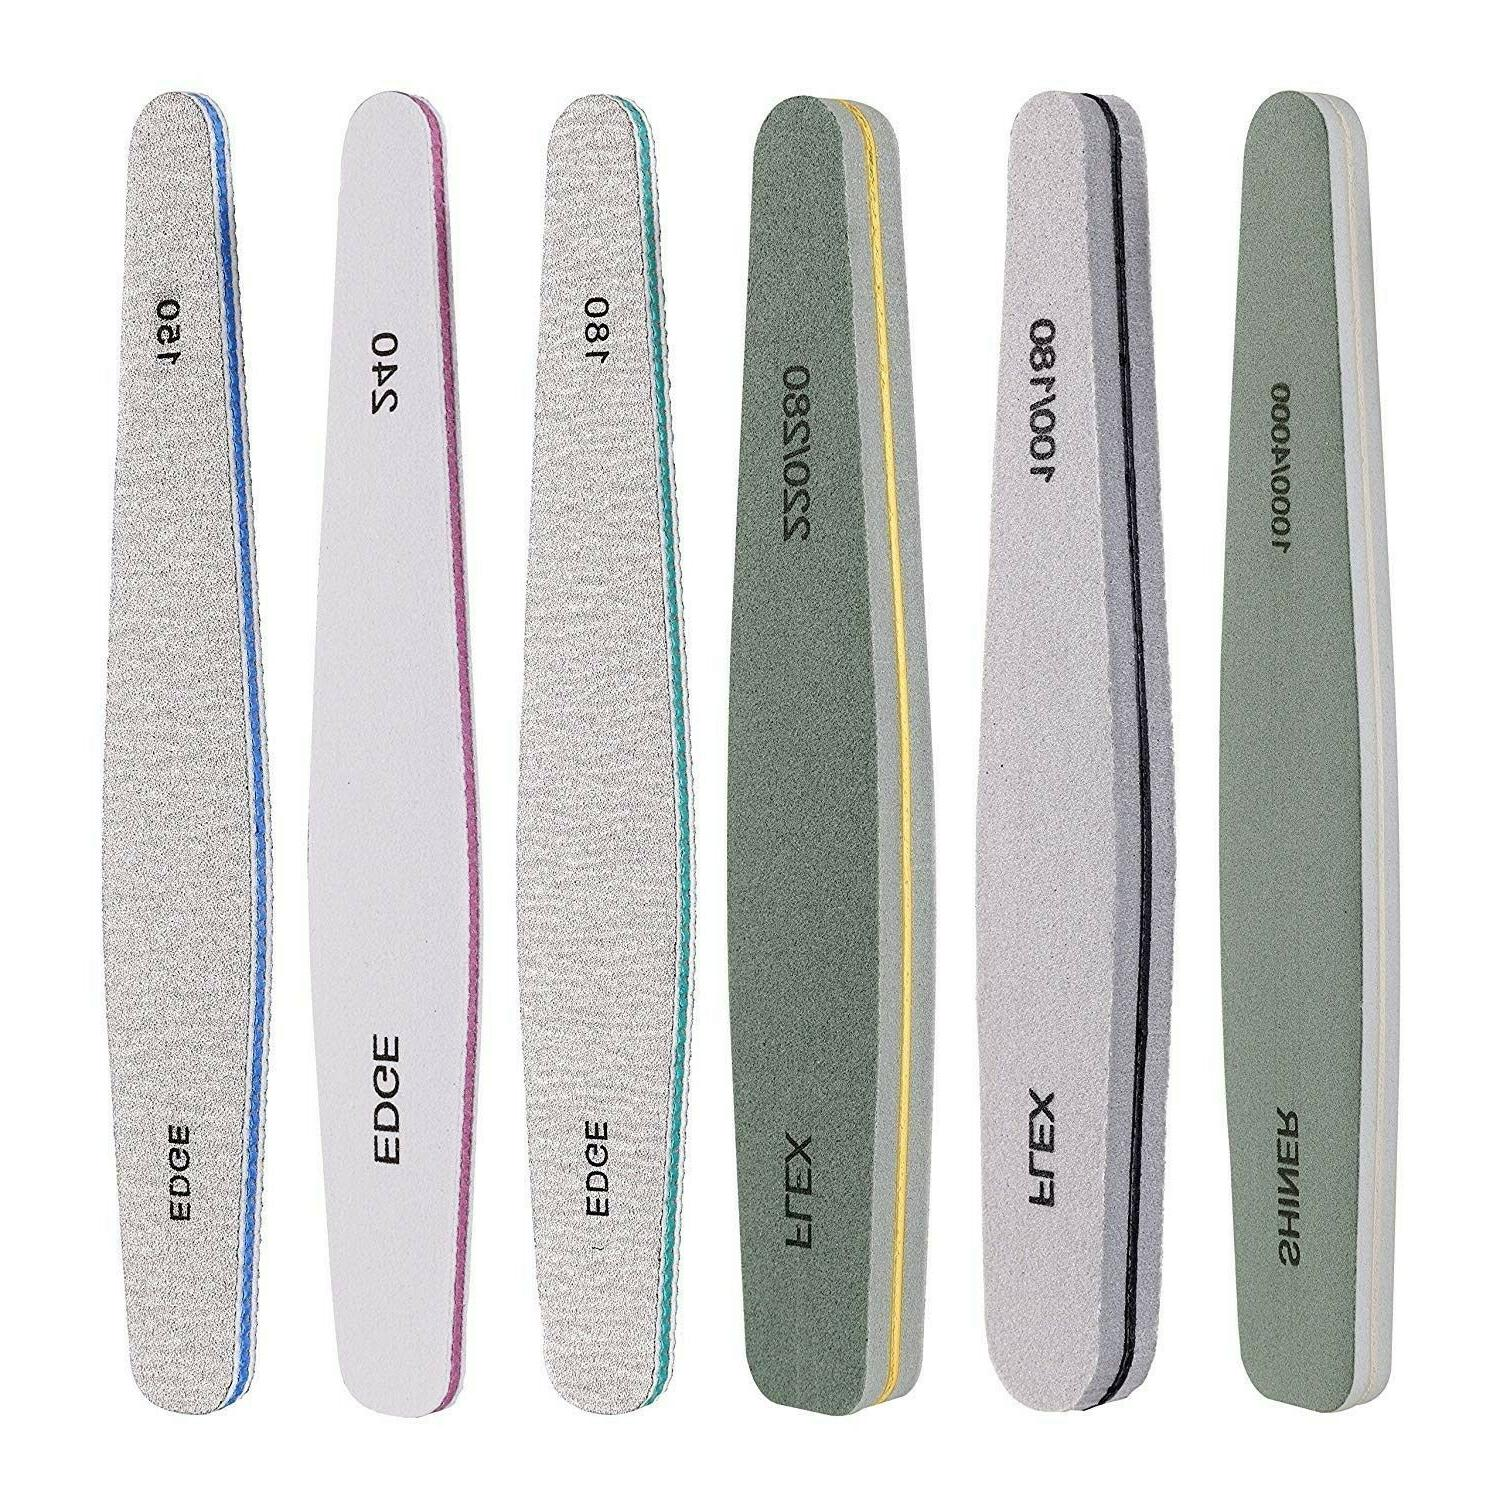 Professional Nail Files Buffers Emery Boards Different Grit